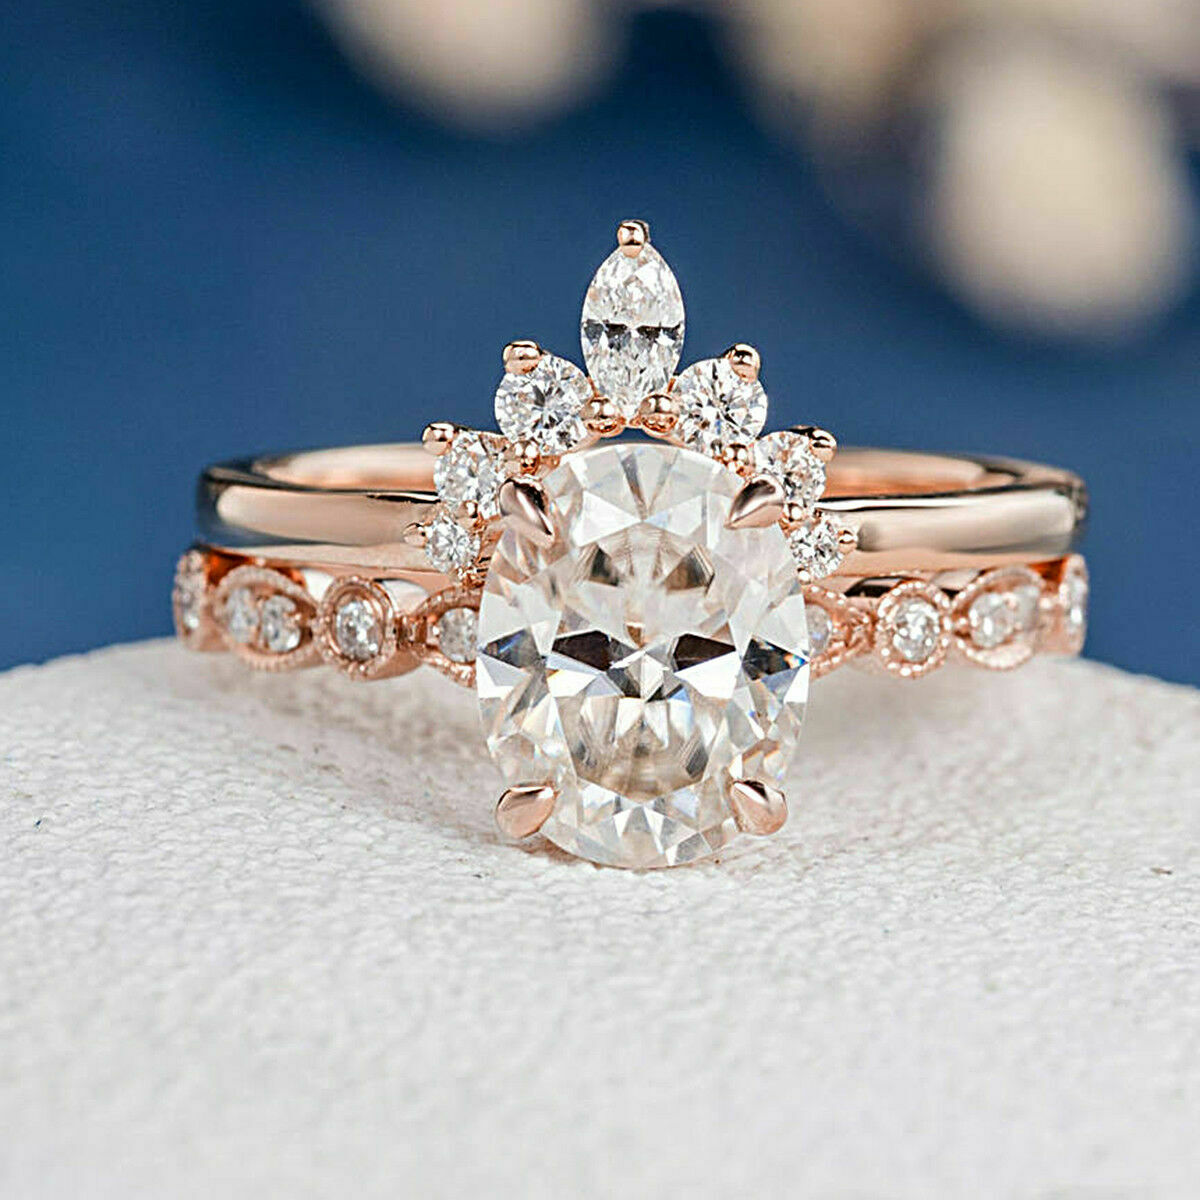 Oval Cut Diamond 2.30 CT Engagement Wedding Ring Set Solid 14k pink gold